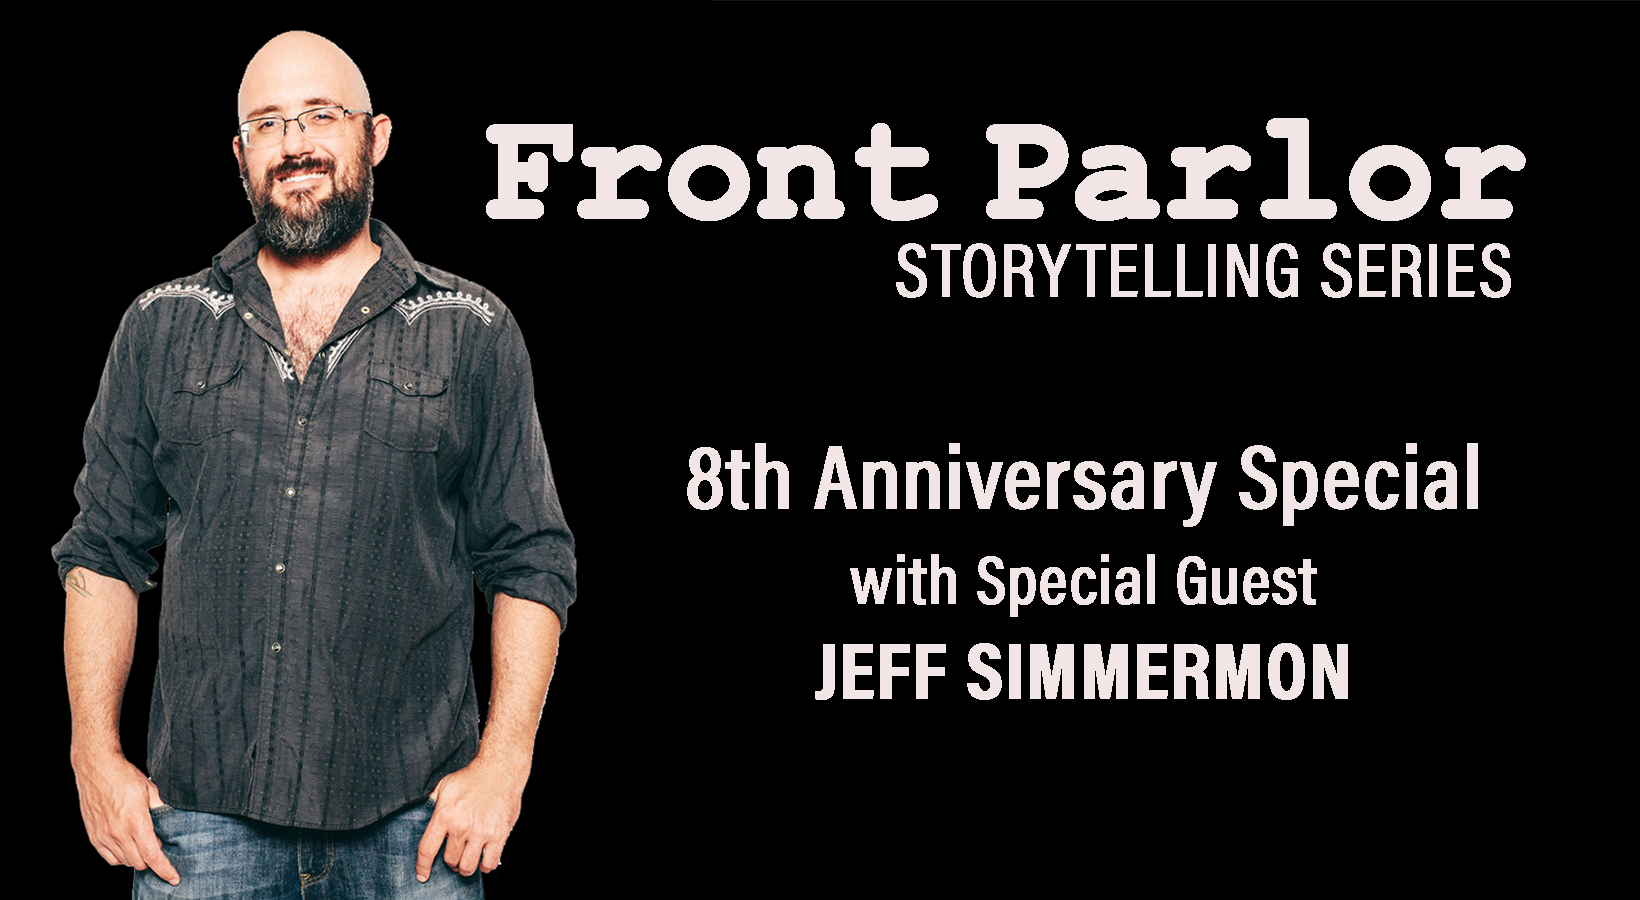 FRONT PARLOR STORYTELLING SERIES: 8th Anniversary with Jeff Simmermon